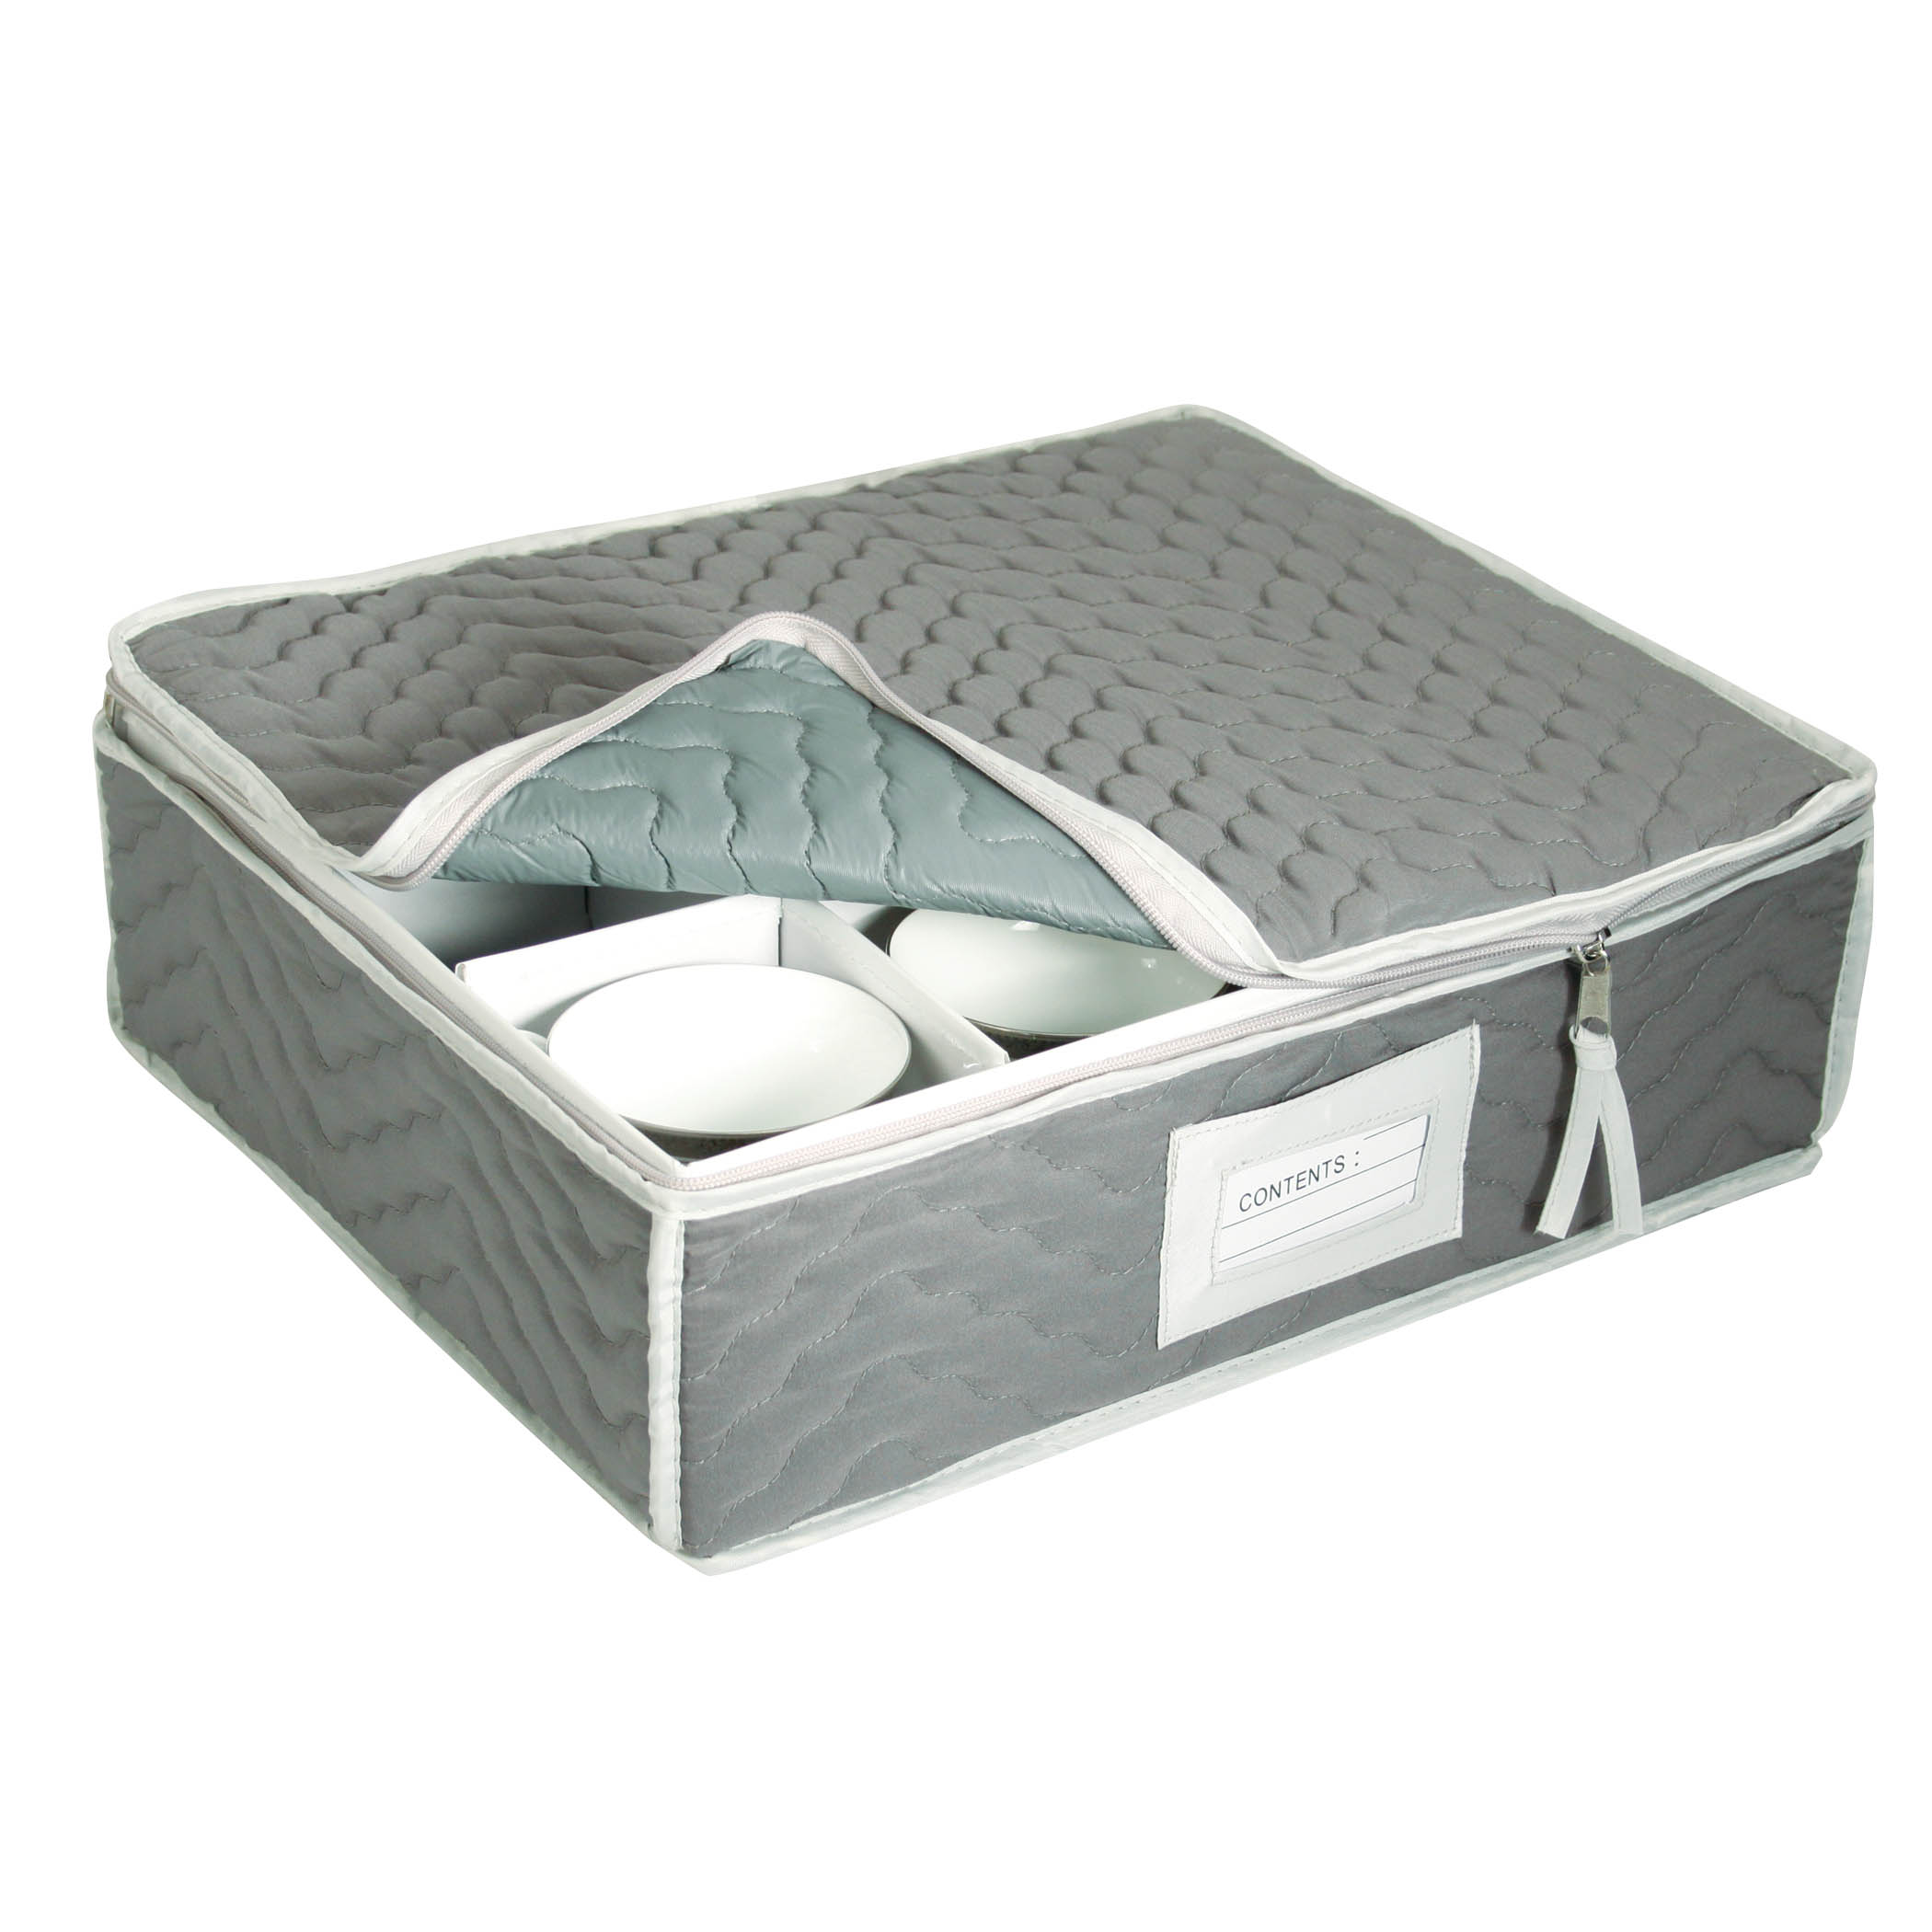 China Cup Storage Chest - Deluxe Quilted Microfiber